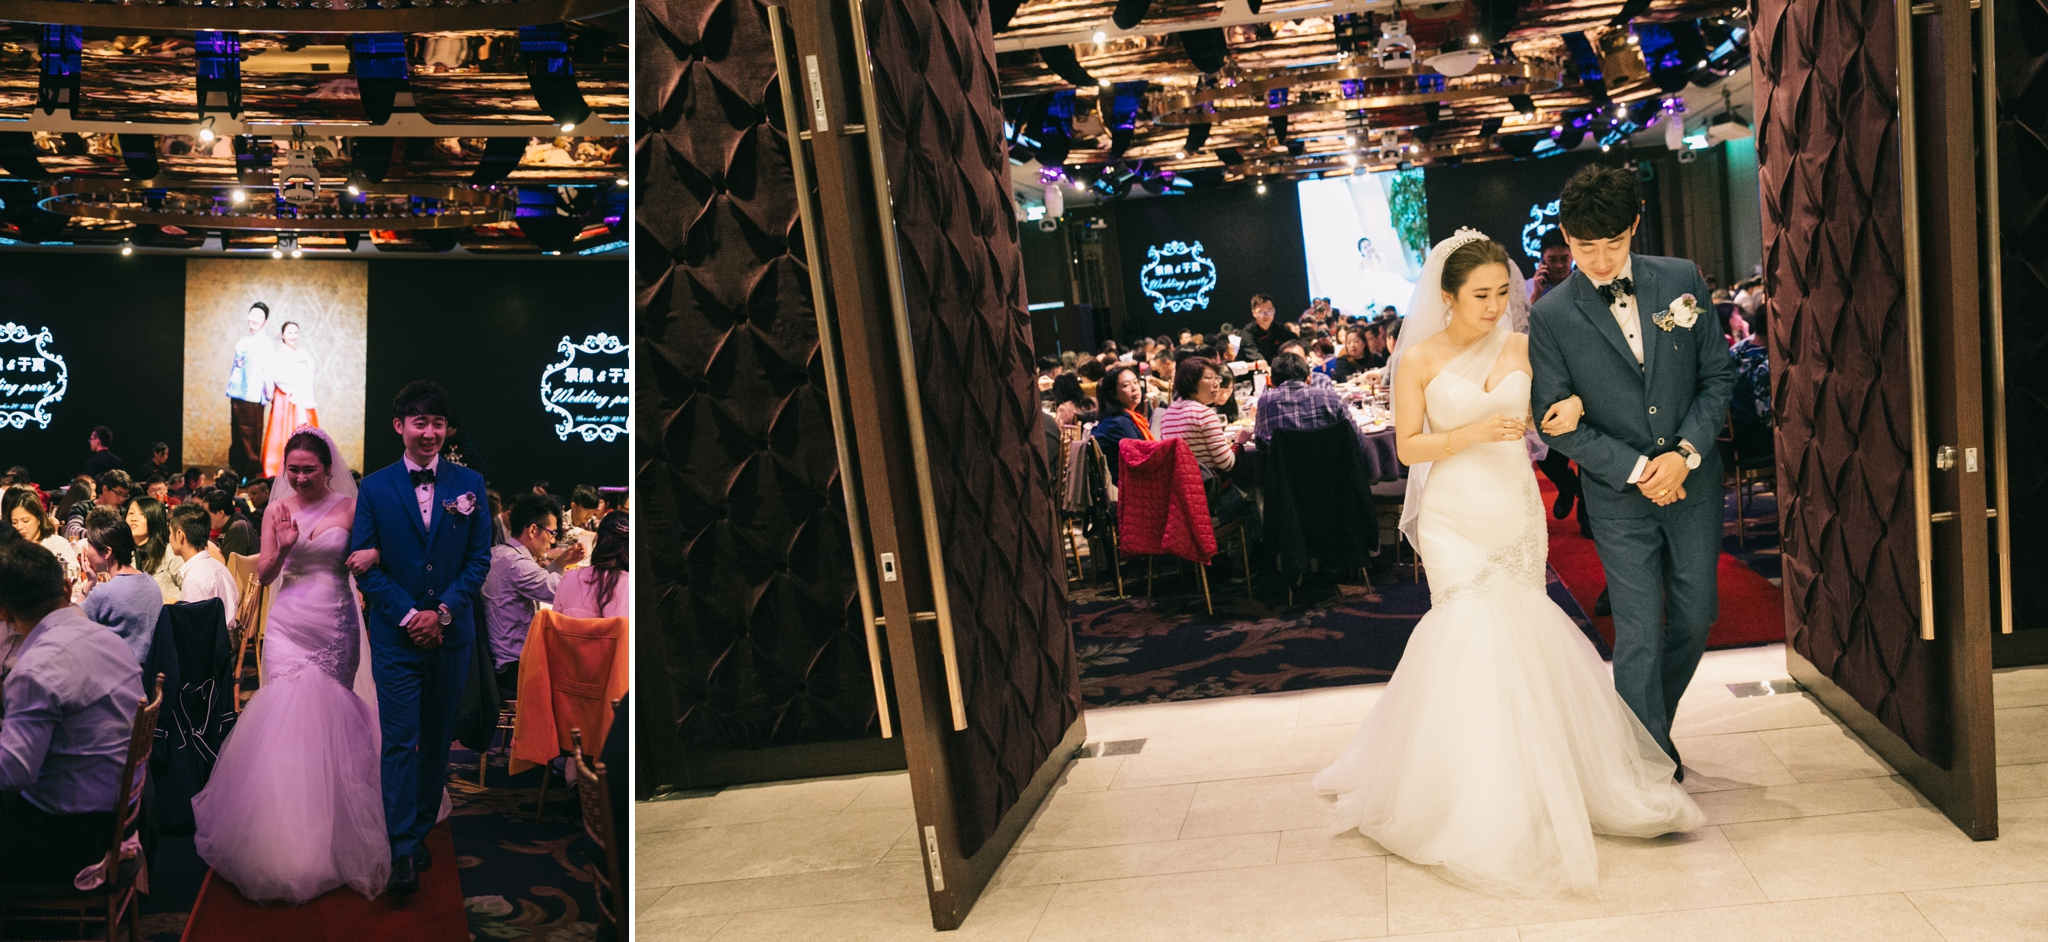 Keddy+Richard-wedding-新莊頤品飯店-191.jpg